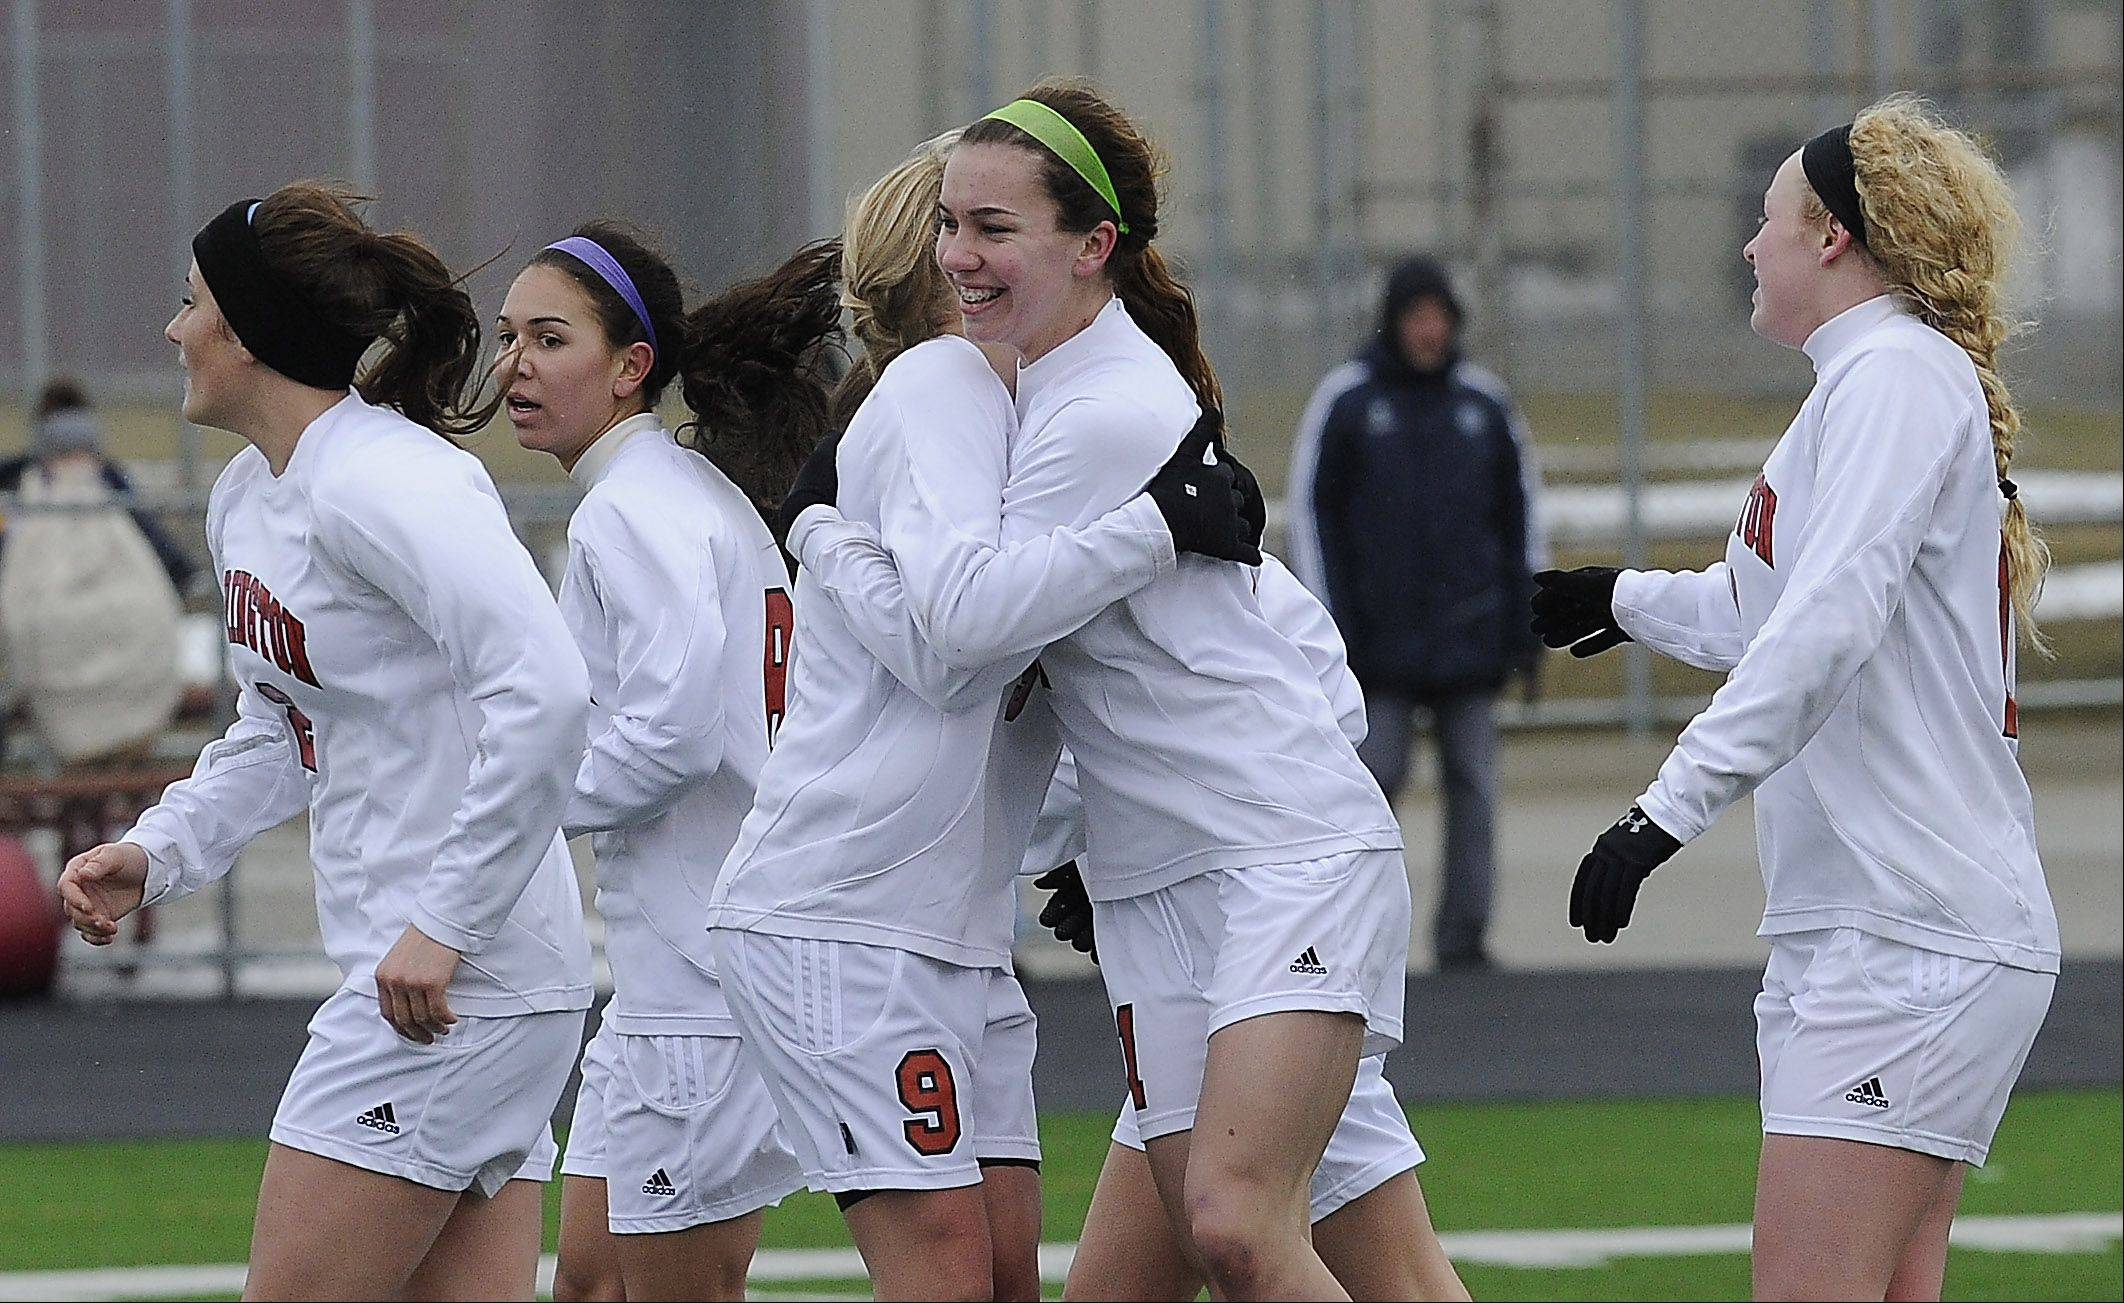 Jenna Szczesny of Barrington, middle, celebrates her goal in the second half against visiting Neuqua Valley on Saturday.